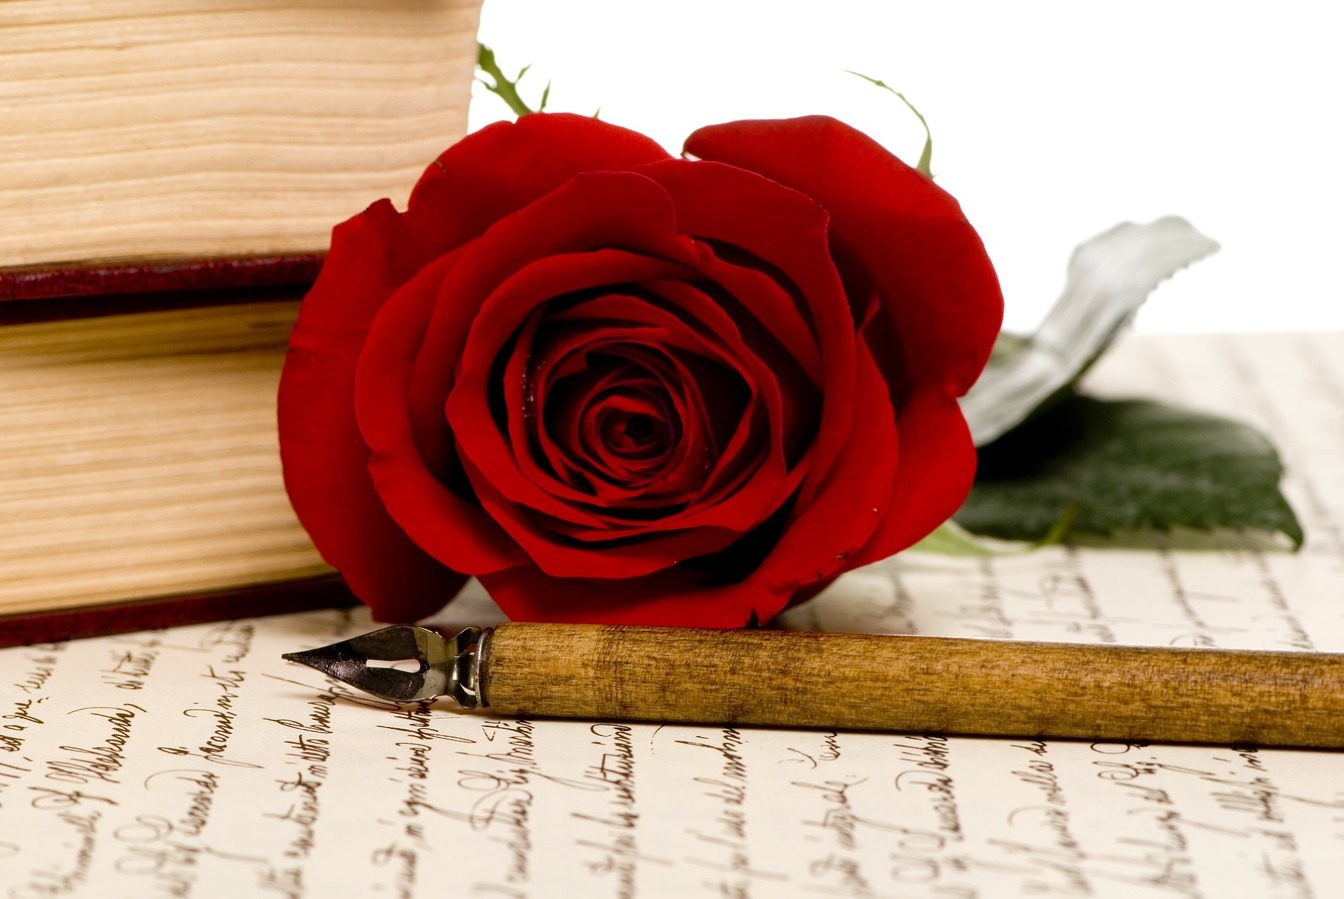 A red rose, resting next to two books, on top of a Will with a pen